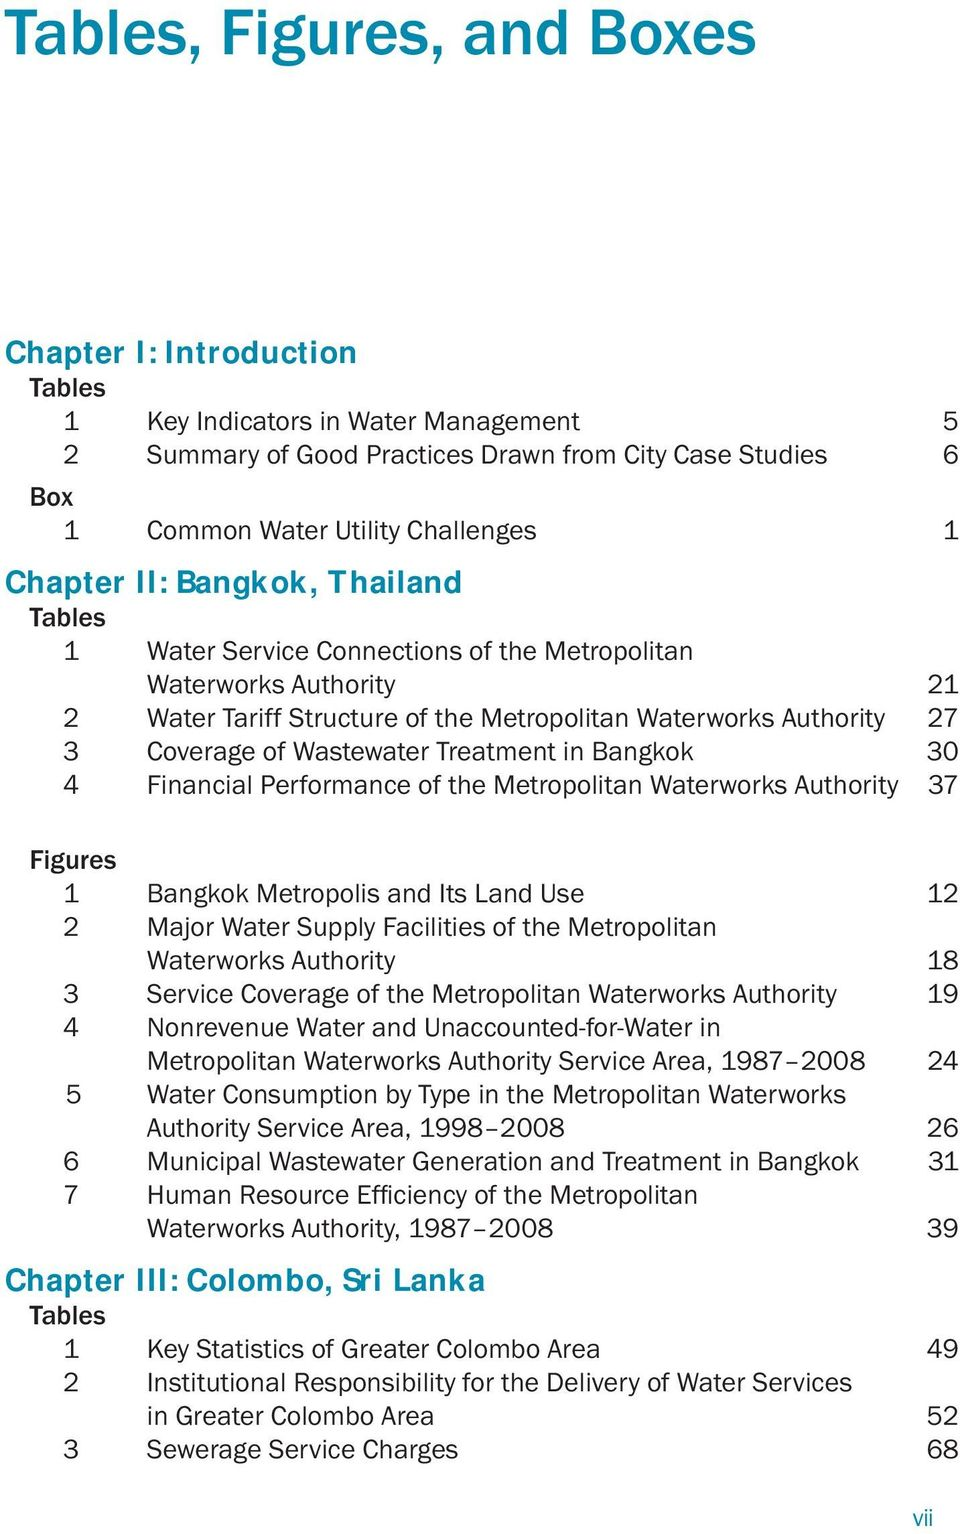 Wastewater Treatment in Bangkok 30 4 Financial Performance of the Metropolitan Waterworks Authority 37 Figures 1 Bangkok Metropolis and Its Land Use 12 2 Major Water Supply Facilities of the